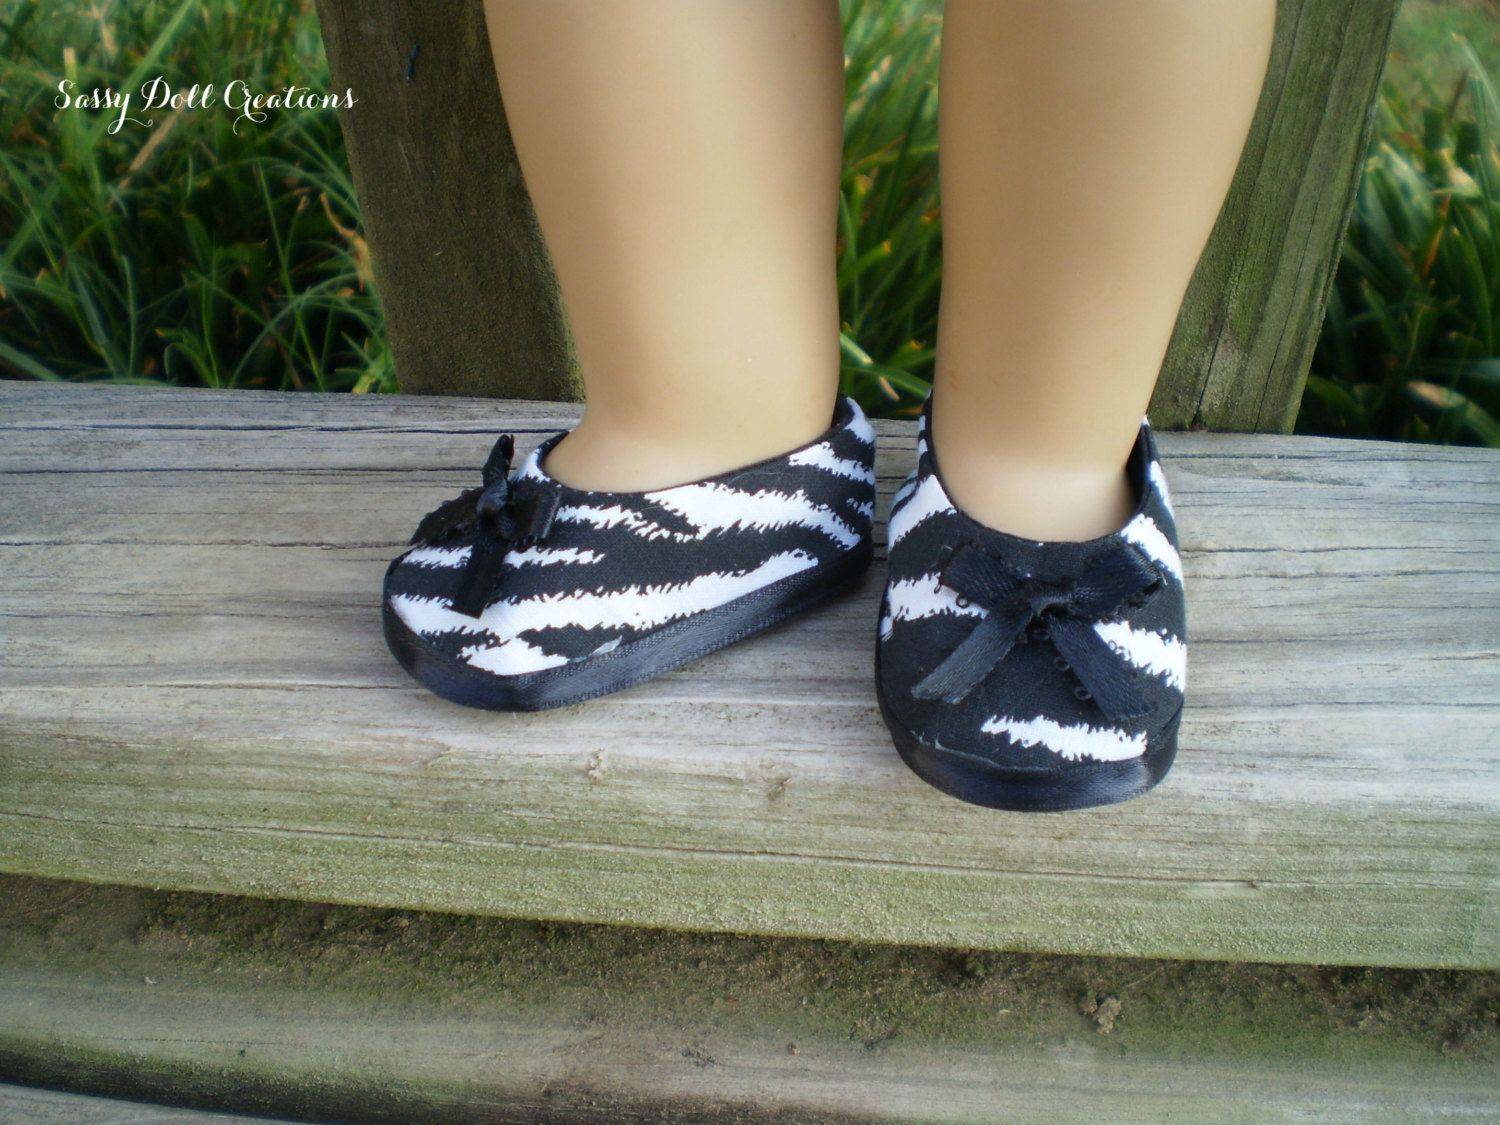 """American Girl Doll Shoes, 18"""" Doll Zebra Shoes, American Girl Doll Zebra Shoes, AG doll Shoes, Ready to Ship shoes, Handmade Doll Shoes - pinned by pin4etsy.com"""